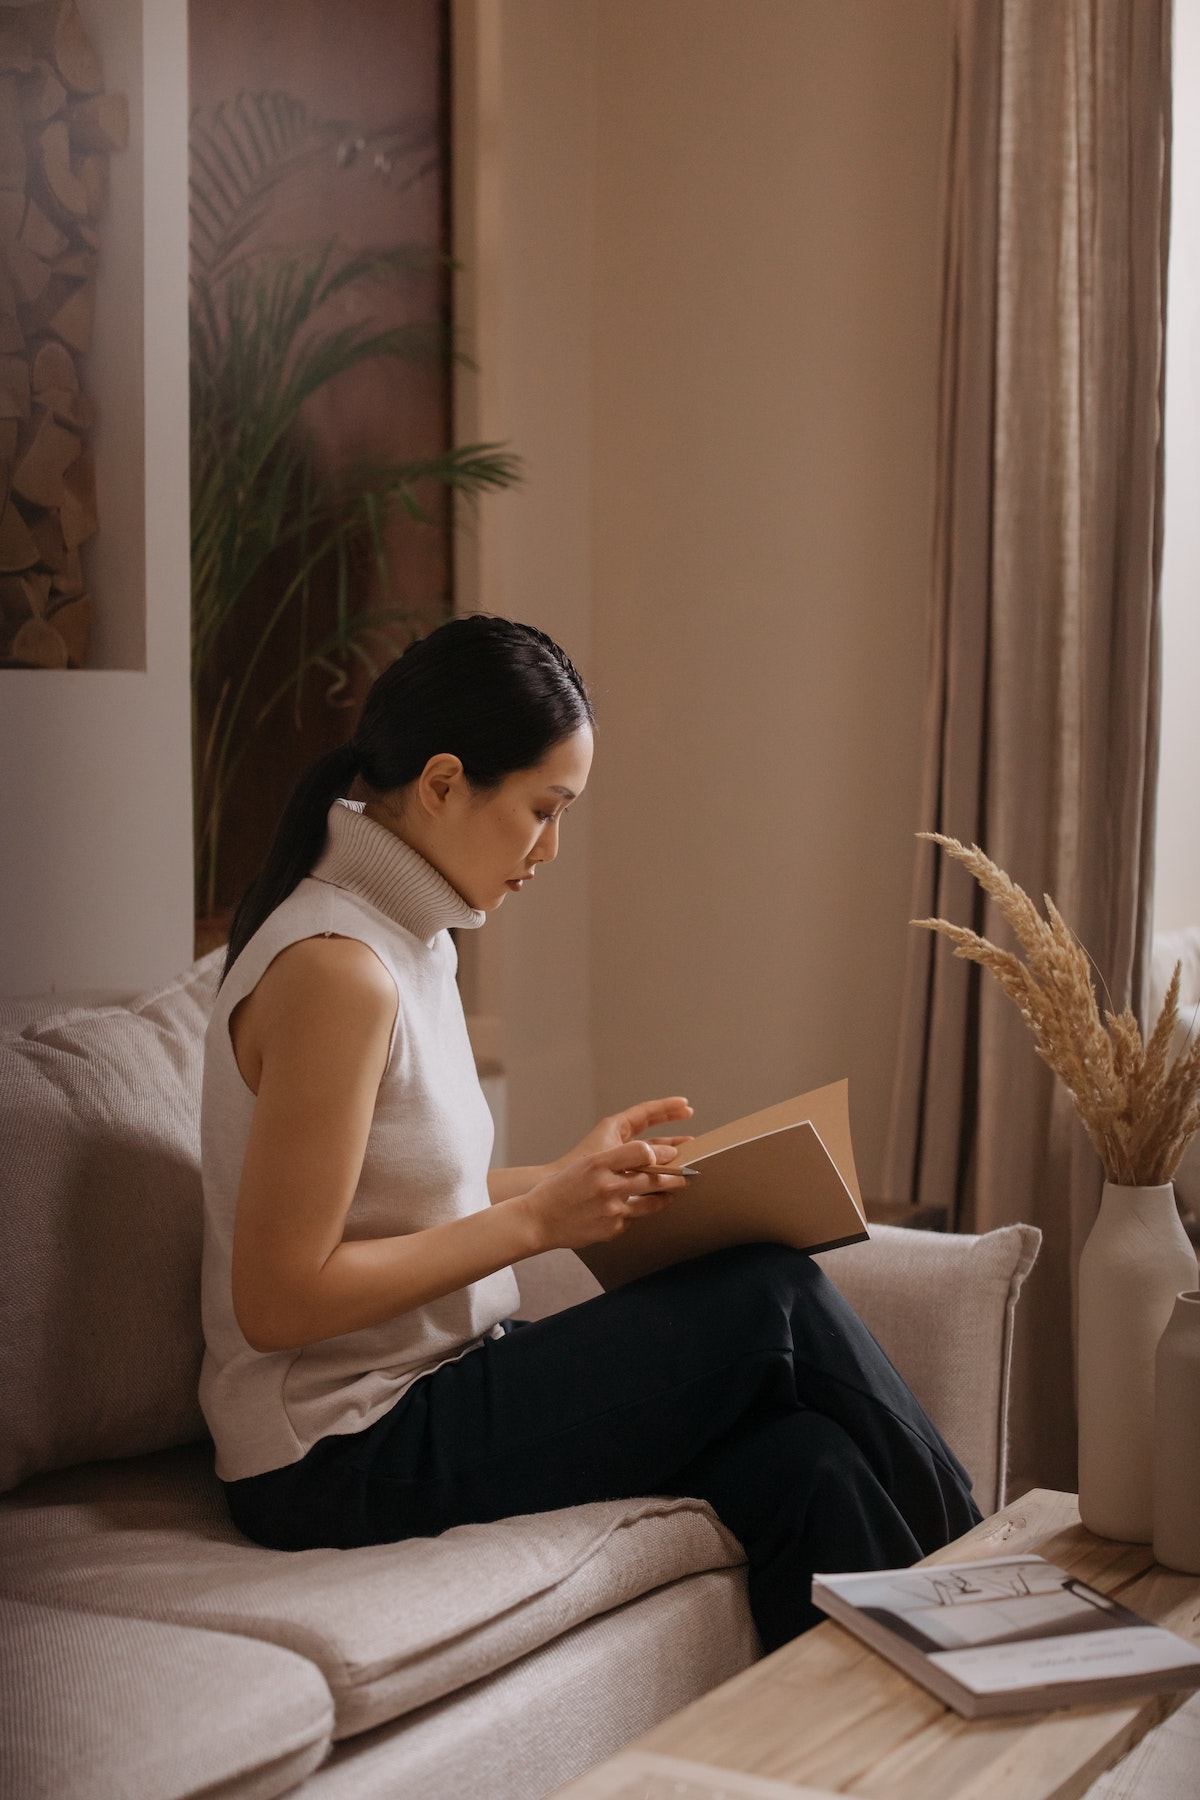 6 Tips To Help You Prepare For Your Next Interview - Prepare To Shine! Womenontopp.com | Women On Topp